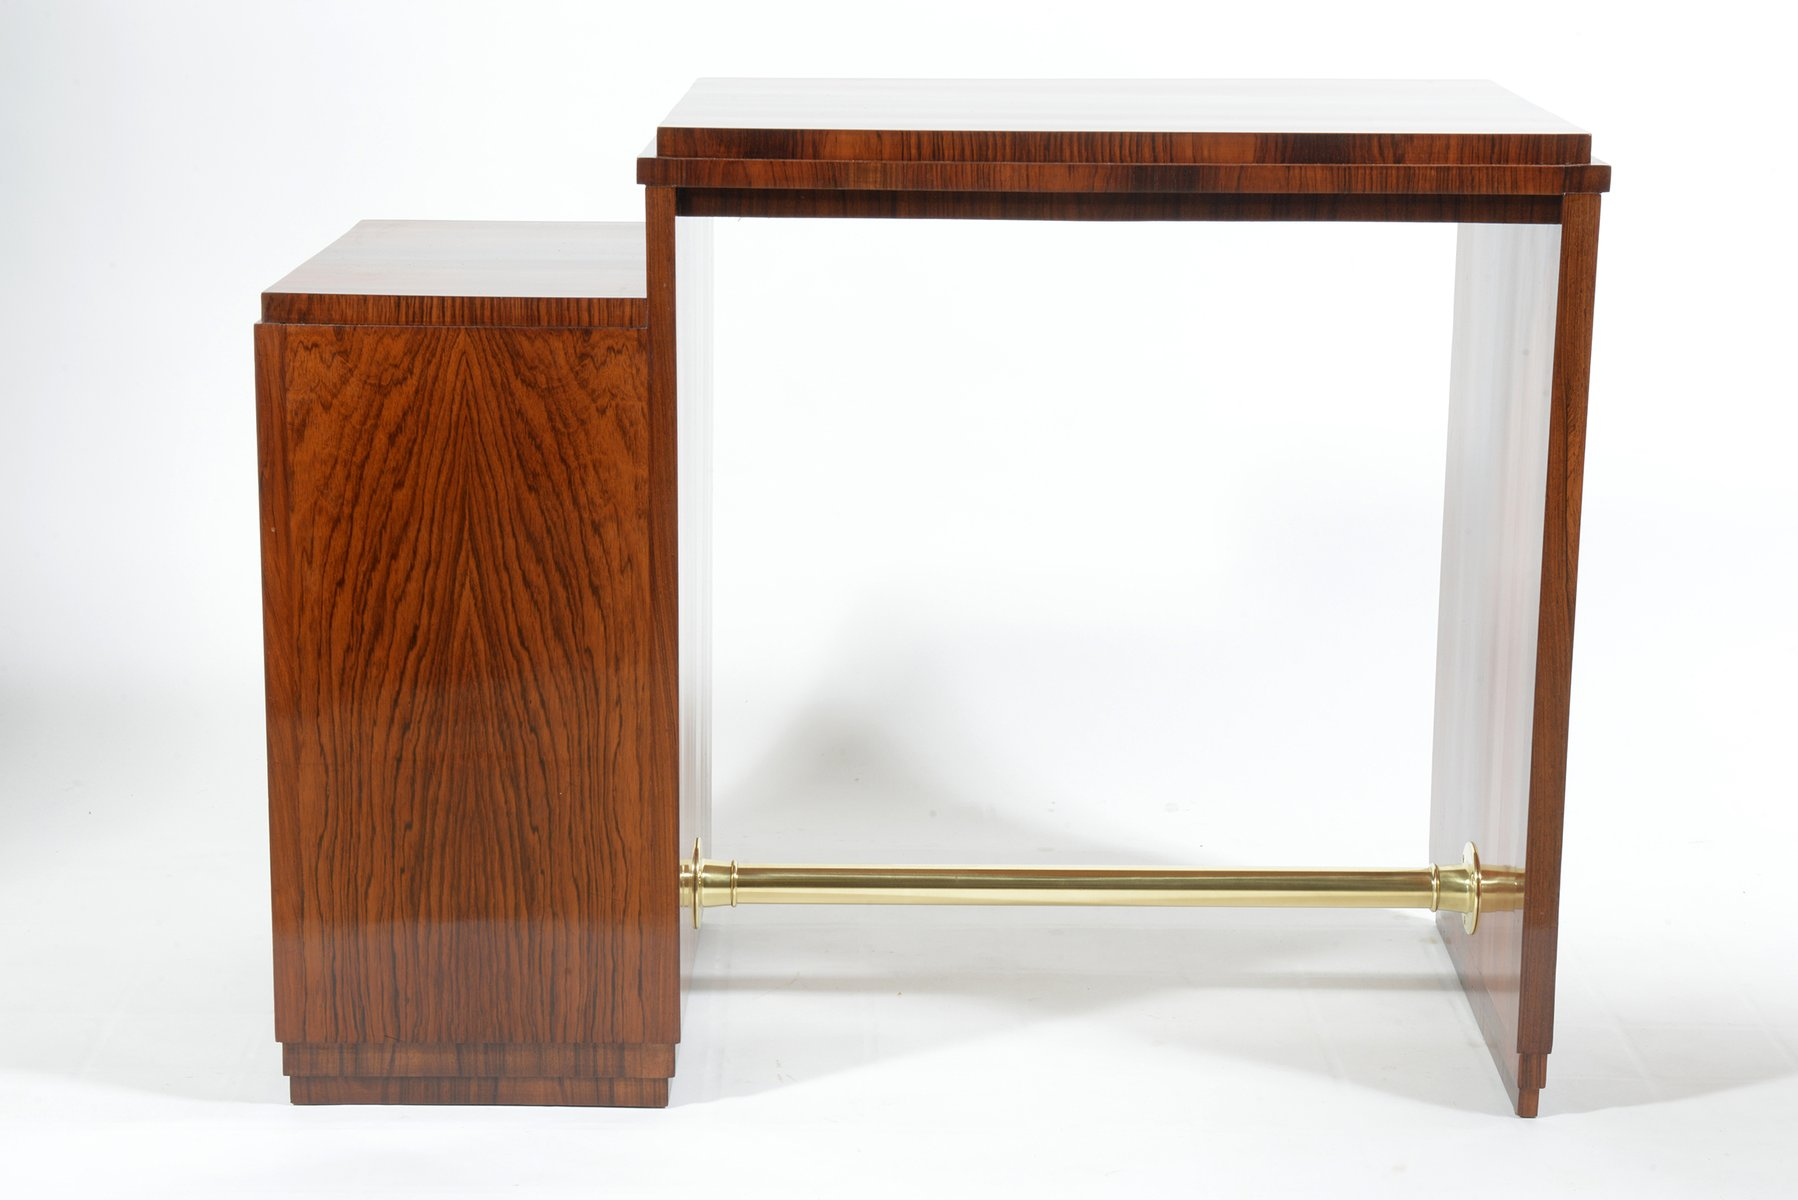 art deco writing desk Small writing desk in small writing desk target graceful small american art deco writing desk along with chair ism then chair small american art deco writing desk.